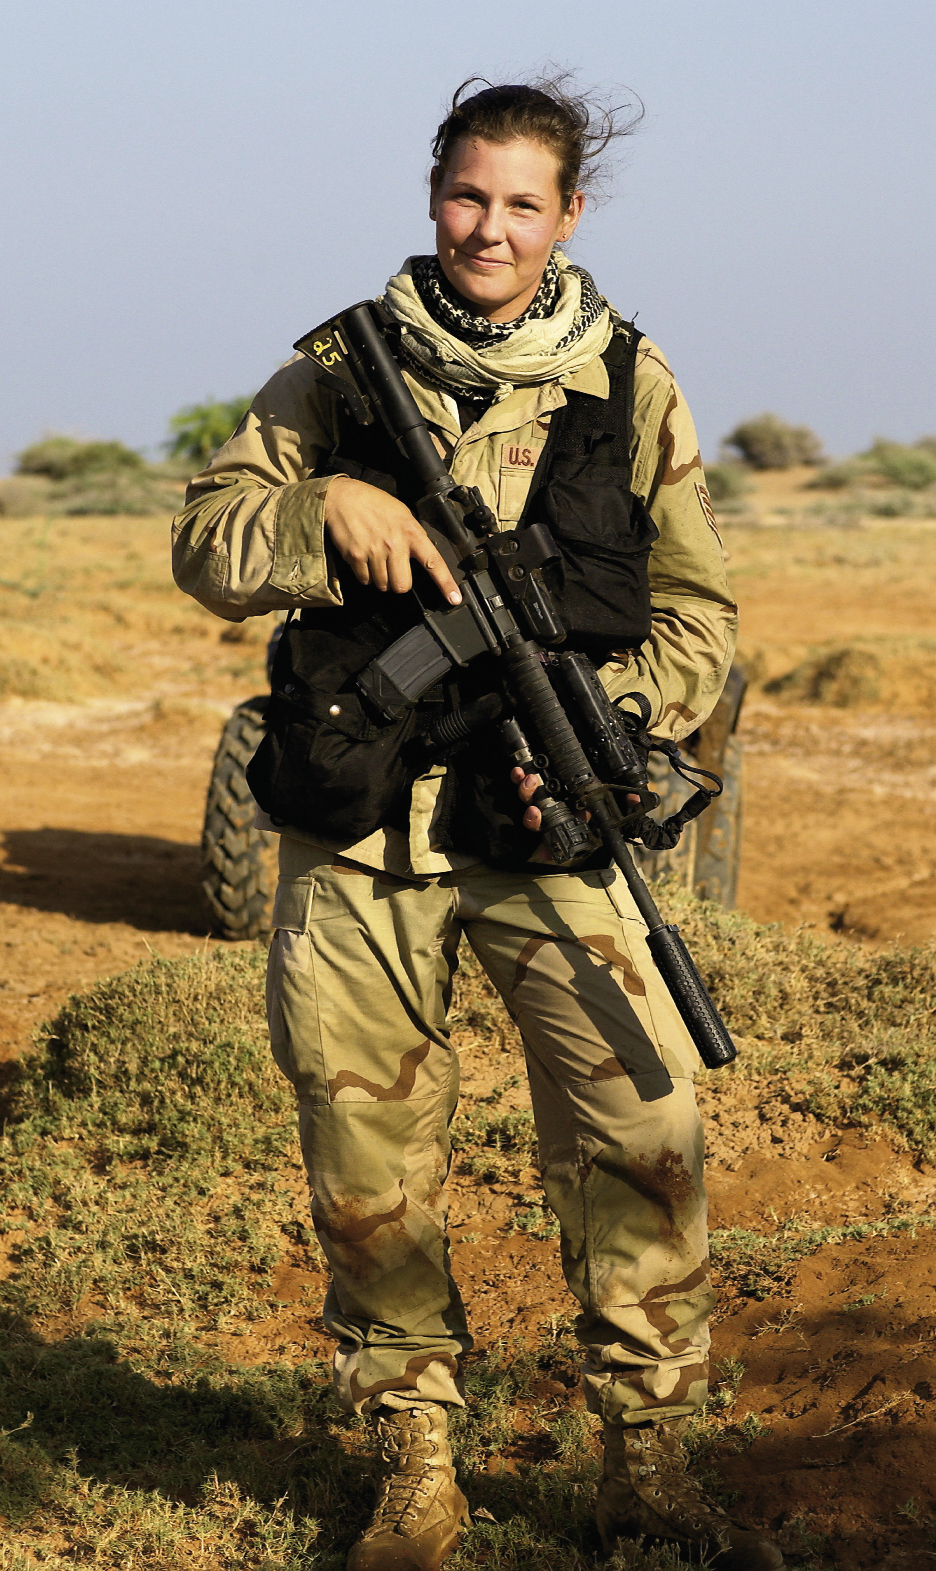 November 4, 2005: Staff Sgt. Stacy L. Pearsall on an operation with Special Forces personnel near the border of Somalia